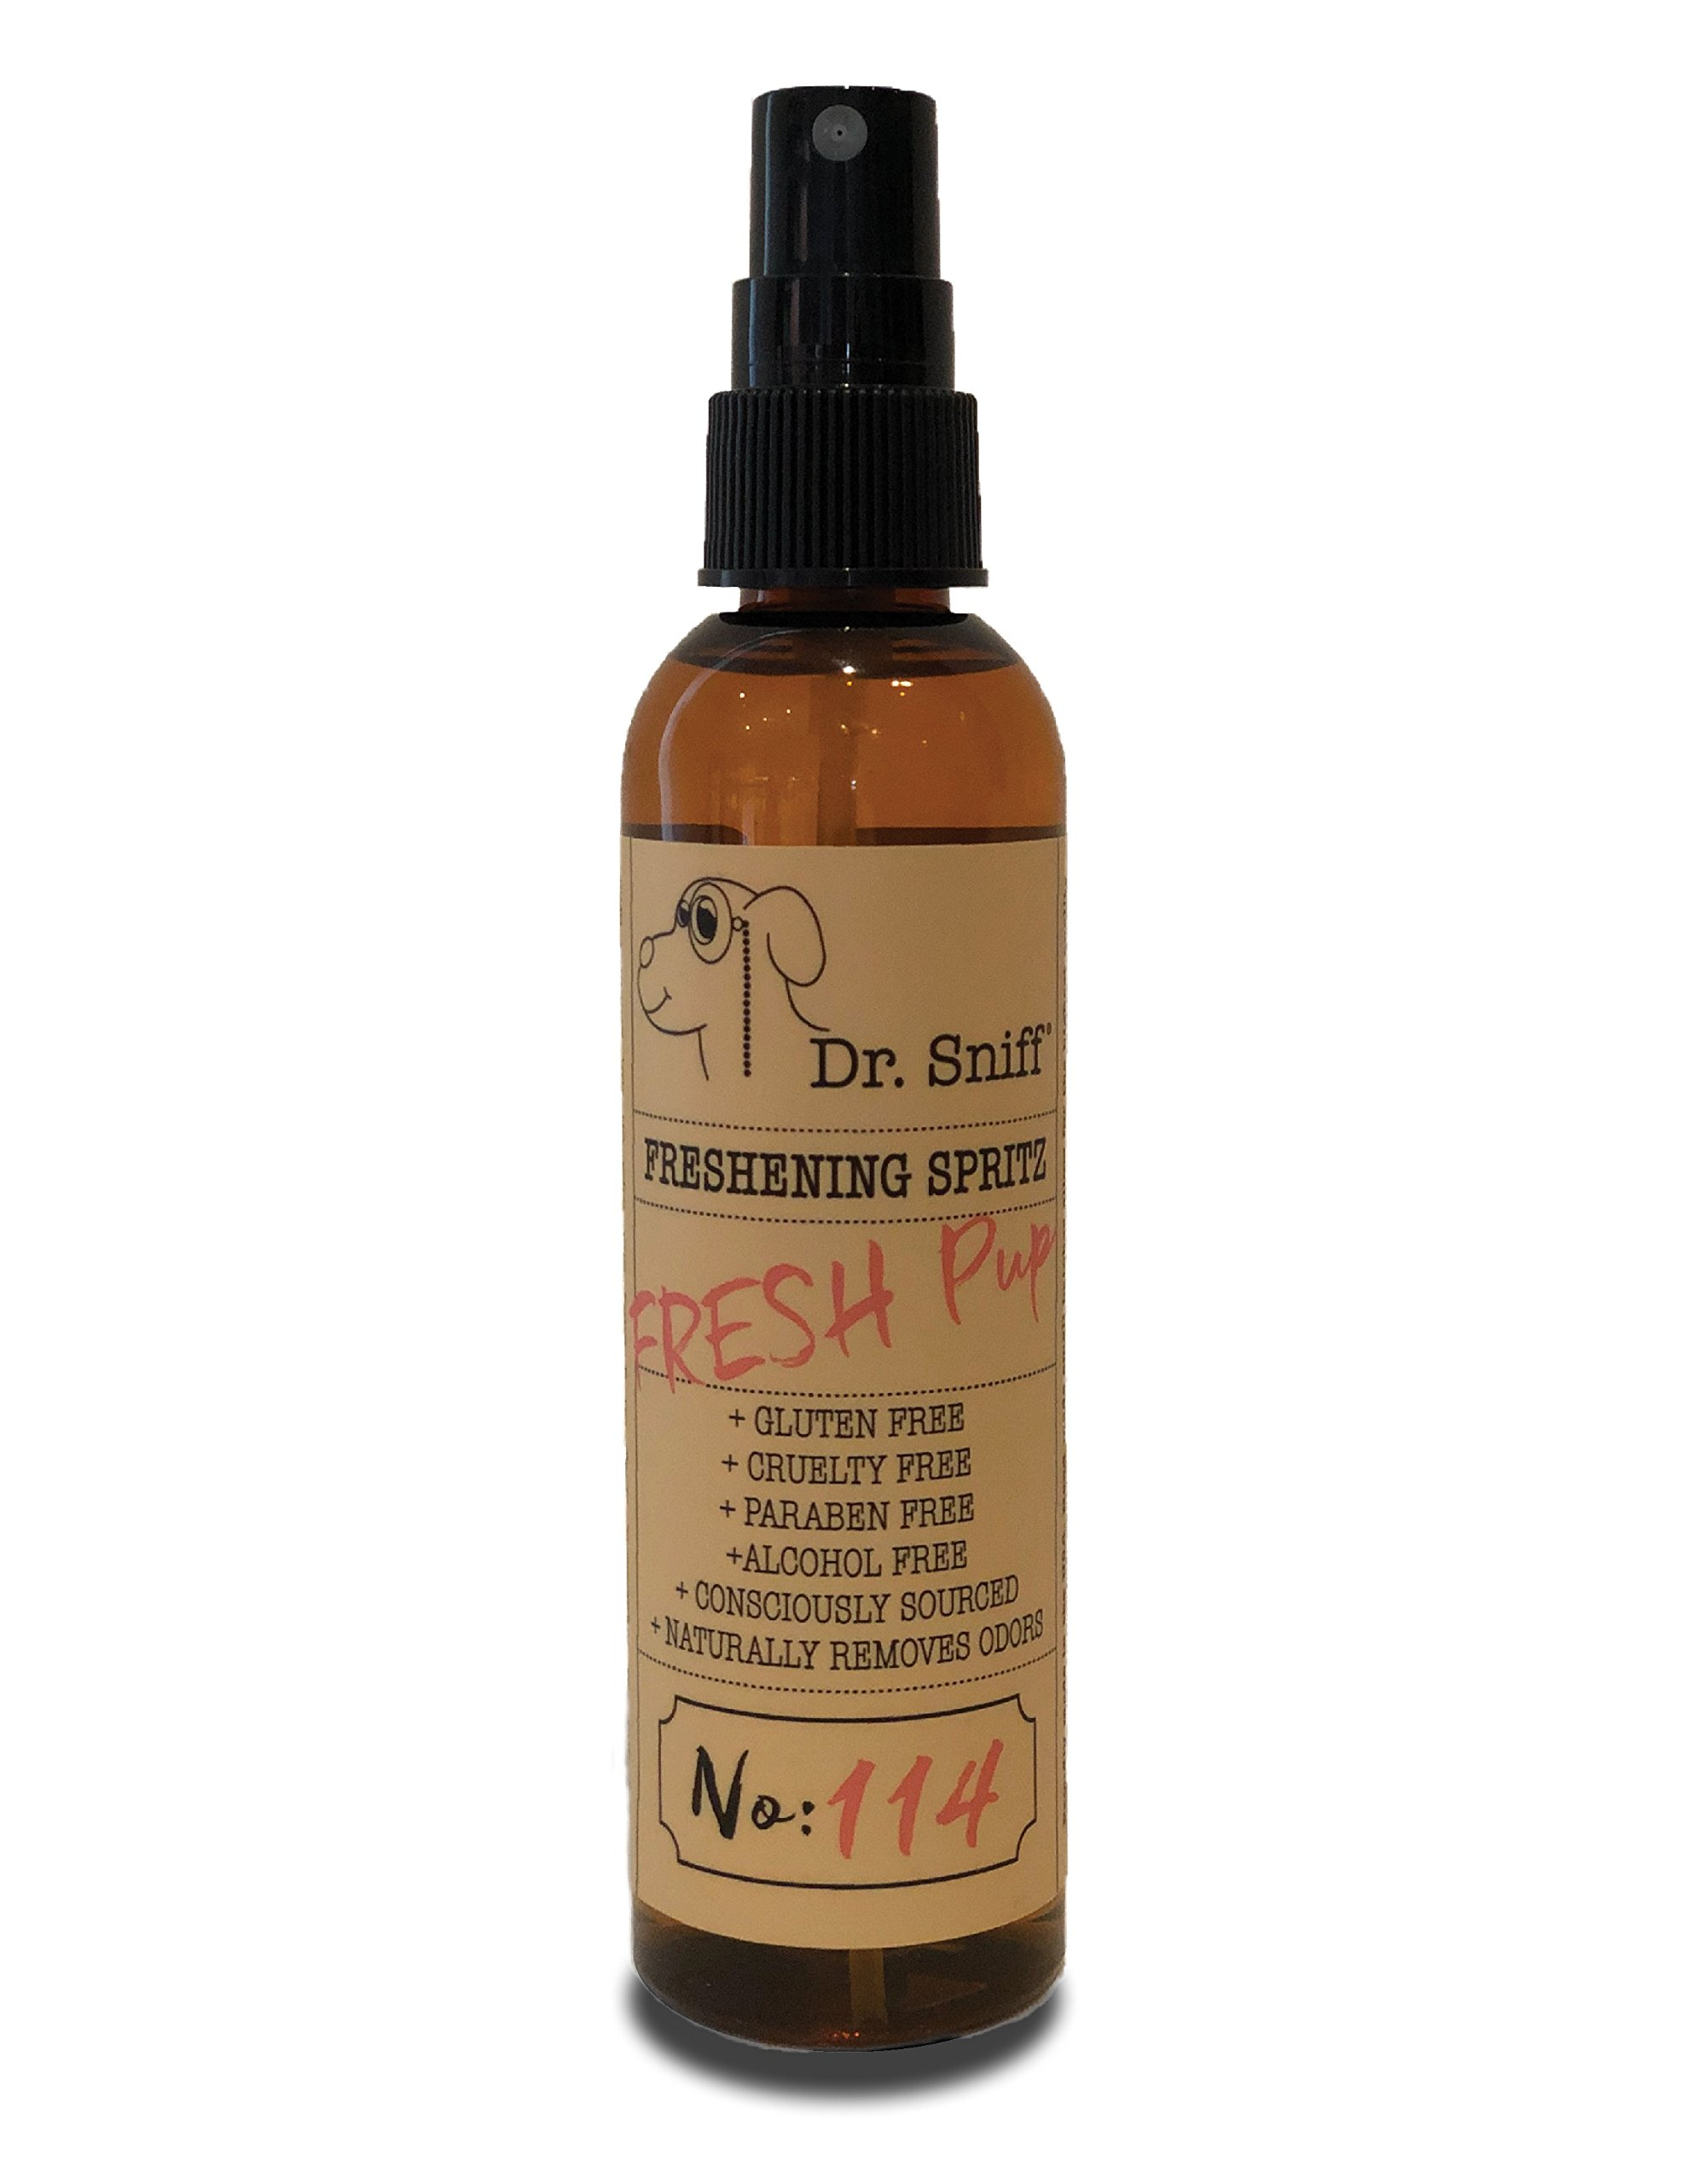 Dr. Sniff Freshening Spritz (Fresh Pup) | Deodorizing Spray | Made with Organic Aloe, Organic Agave and Argan Oil | Free of Alcohol, Parabens, Toxins, Sulfates and Gluten | Eliminates Odors | 4oz